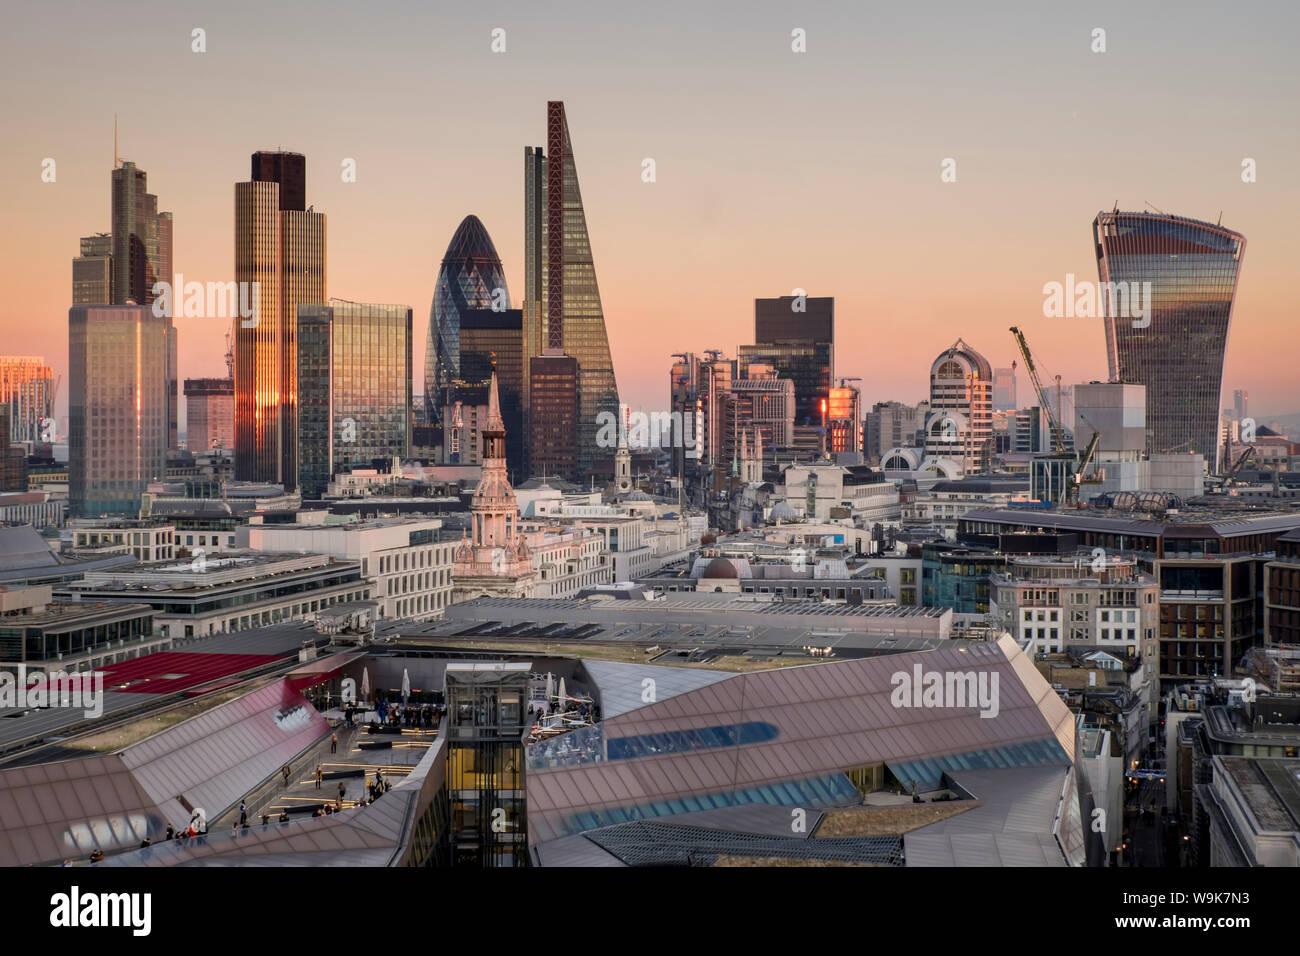 City of London skyline from St. Pauls Cathedral, London, England, United Kingdom, Europe Stock Photo